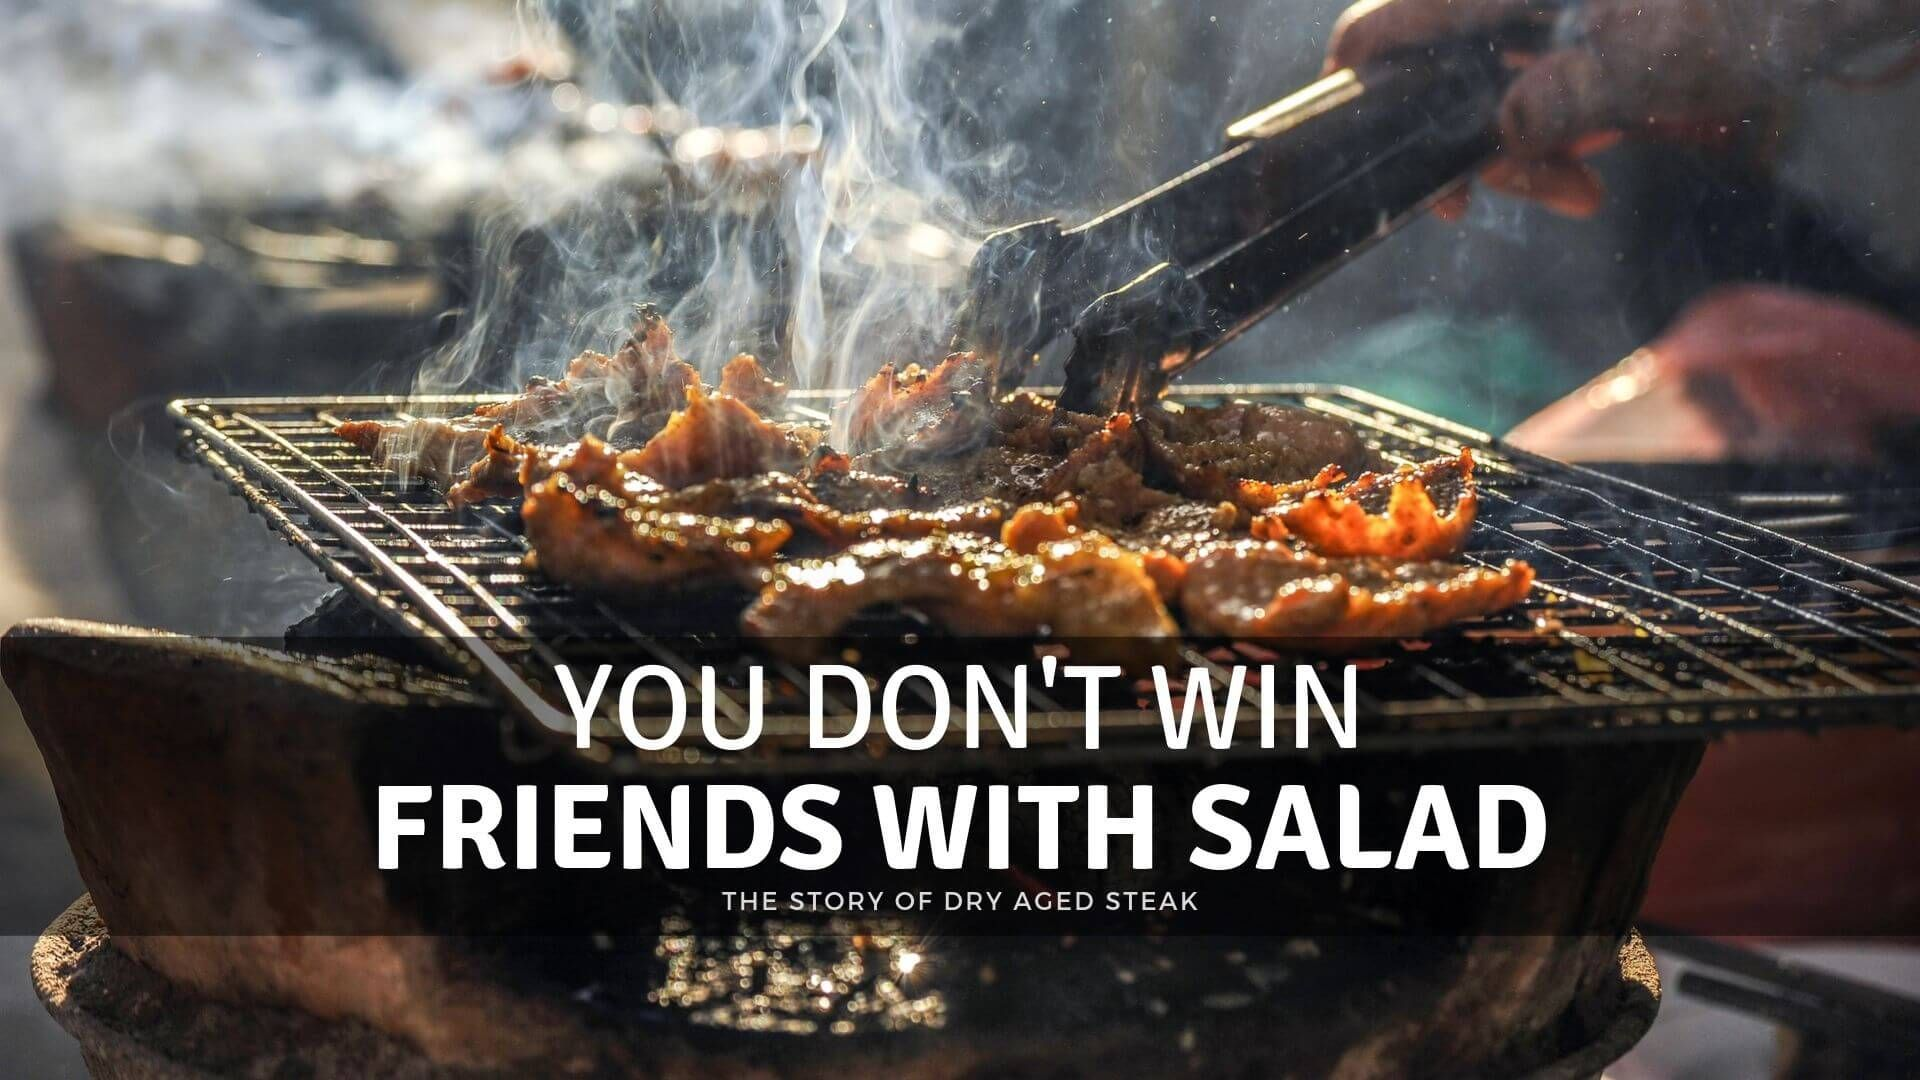 You Don't Win Friends With Salad Bbq restaurant, Bbq